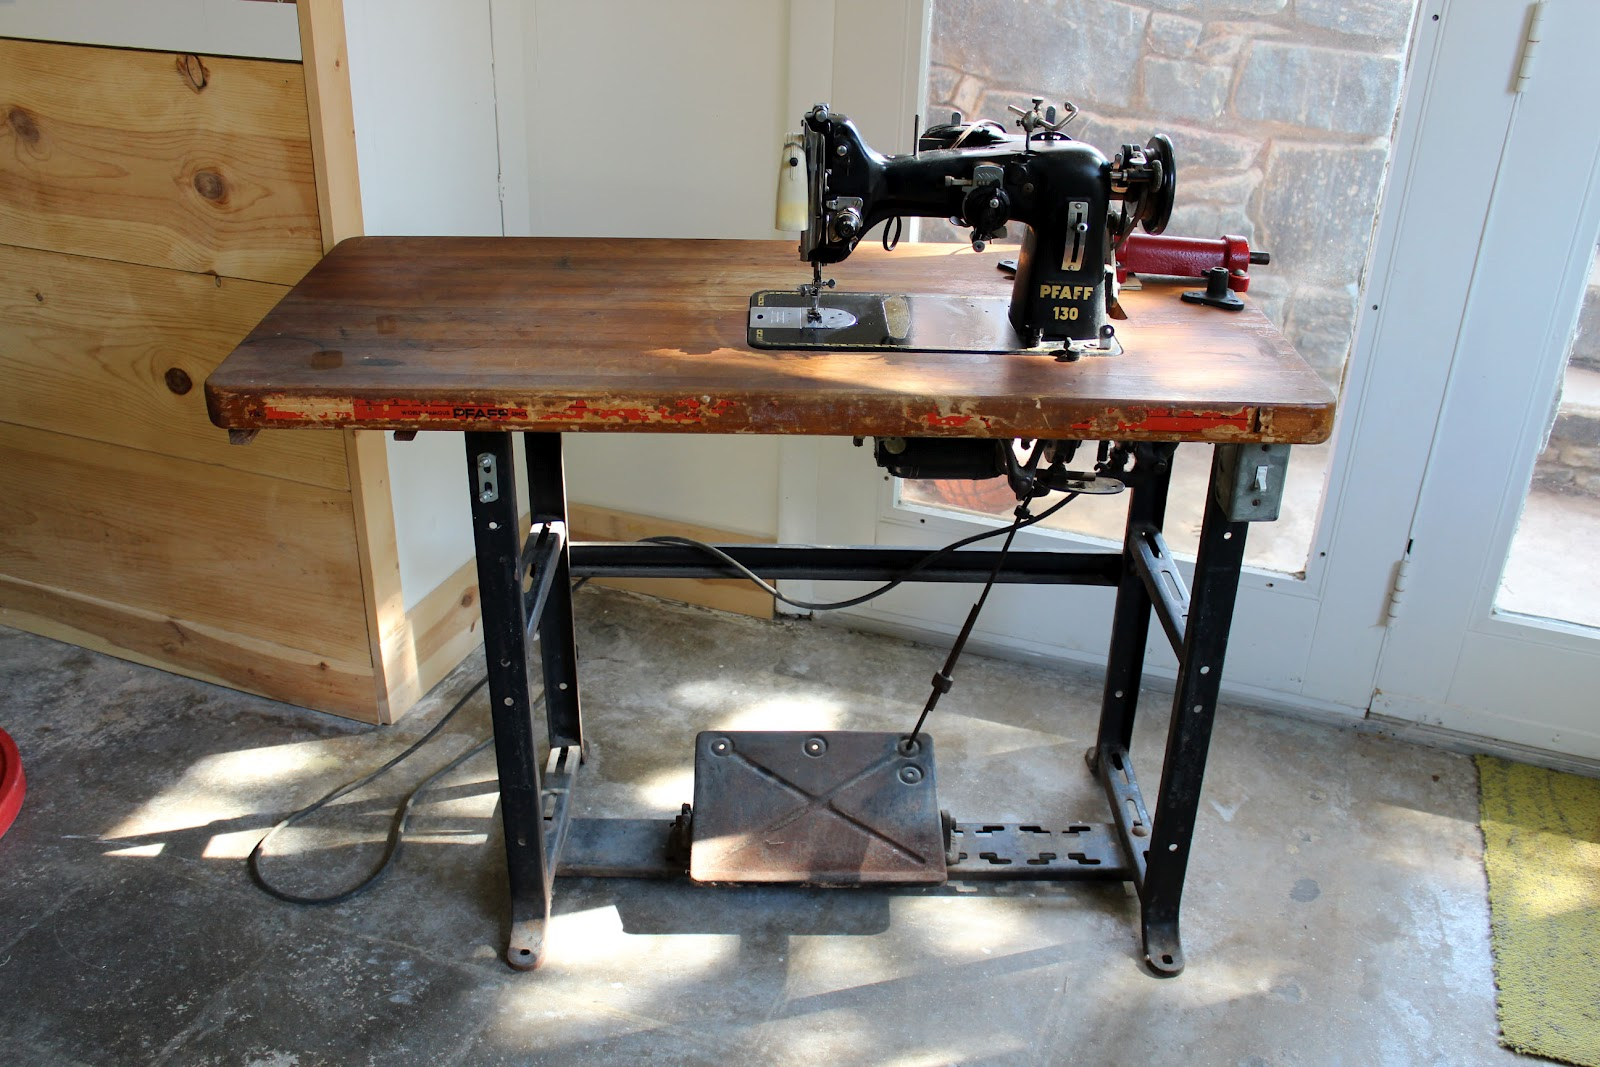 Pfaff 130 in an Industrial Table & A Sewing Life: Pfaff 130 in an Industrial Table